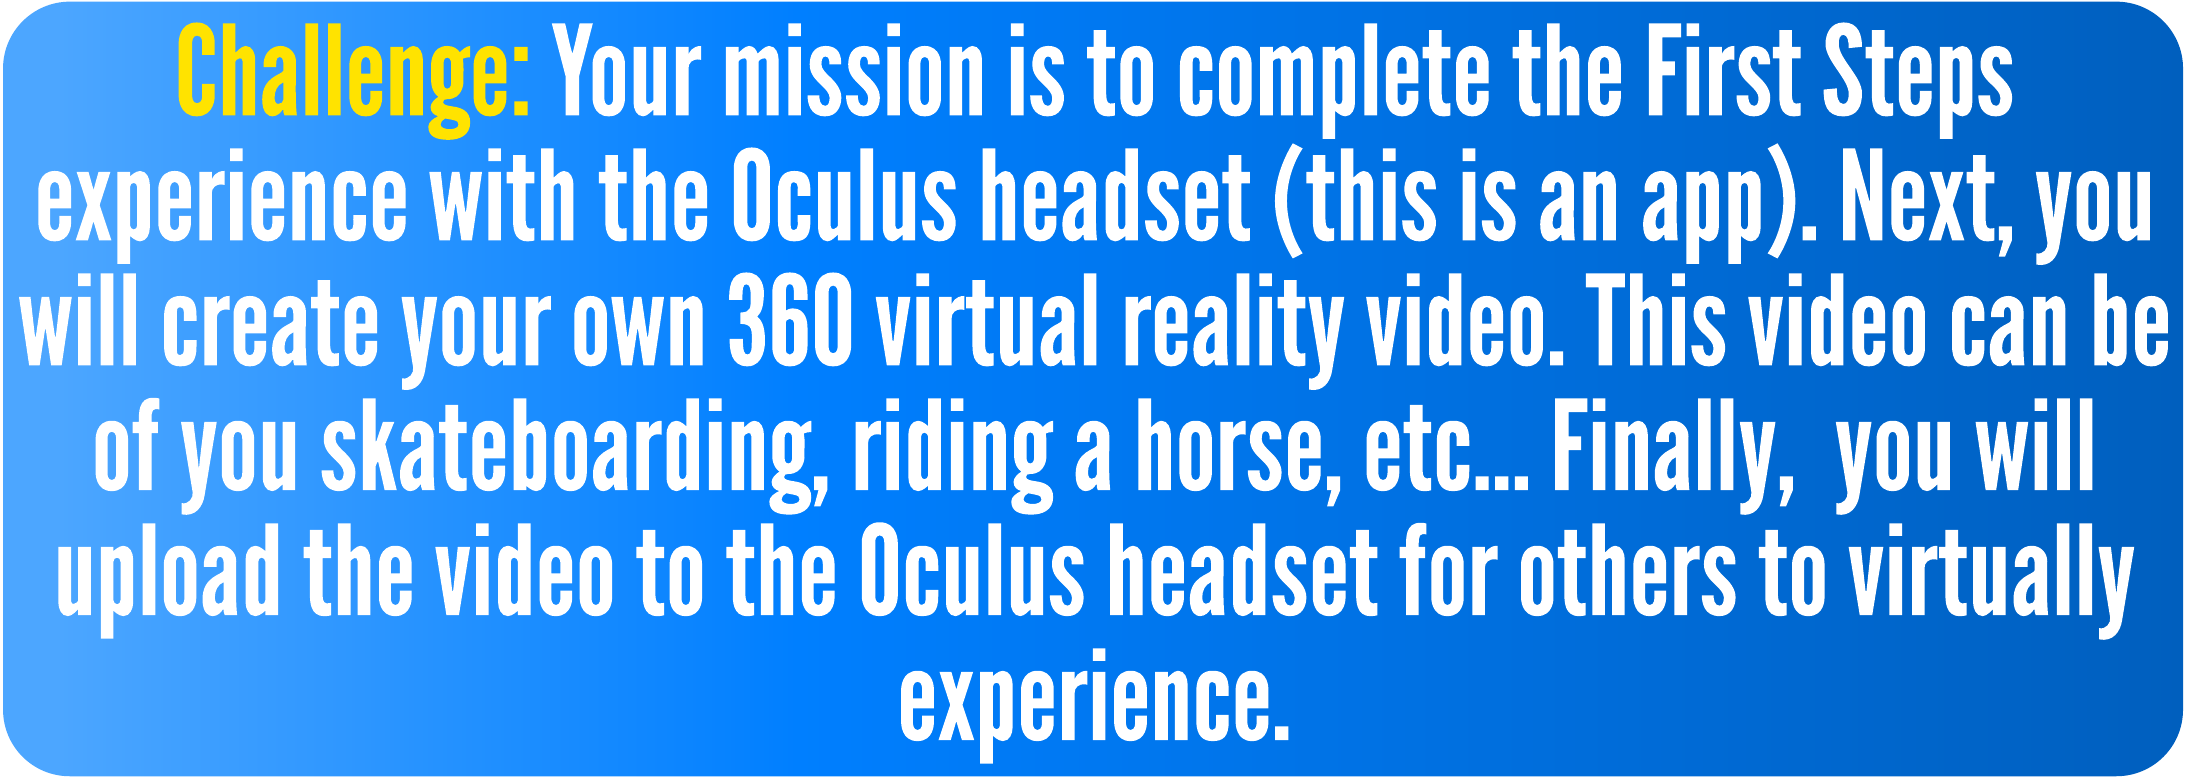 Challenge: Your mission is to complete the First Steps experience with the Oculus headset (this is an app). Then, you will create your own 360 virtual reality video. This video can be of you skateboarding, riding a horse, etc... Then,  you will upload the video to the Oculus headset for others to virtually experience.